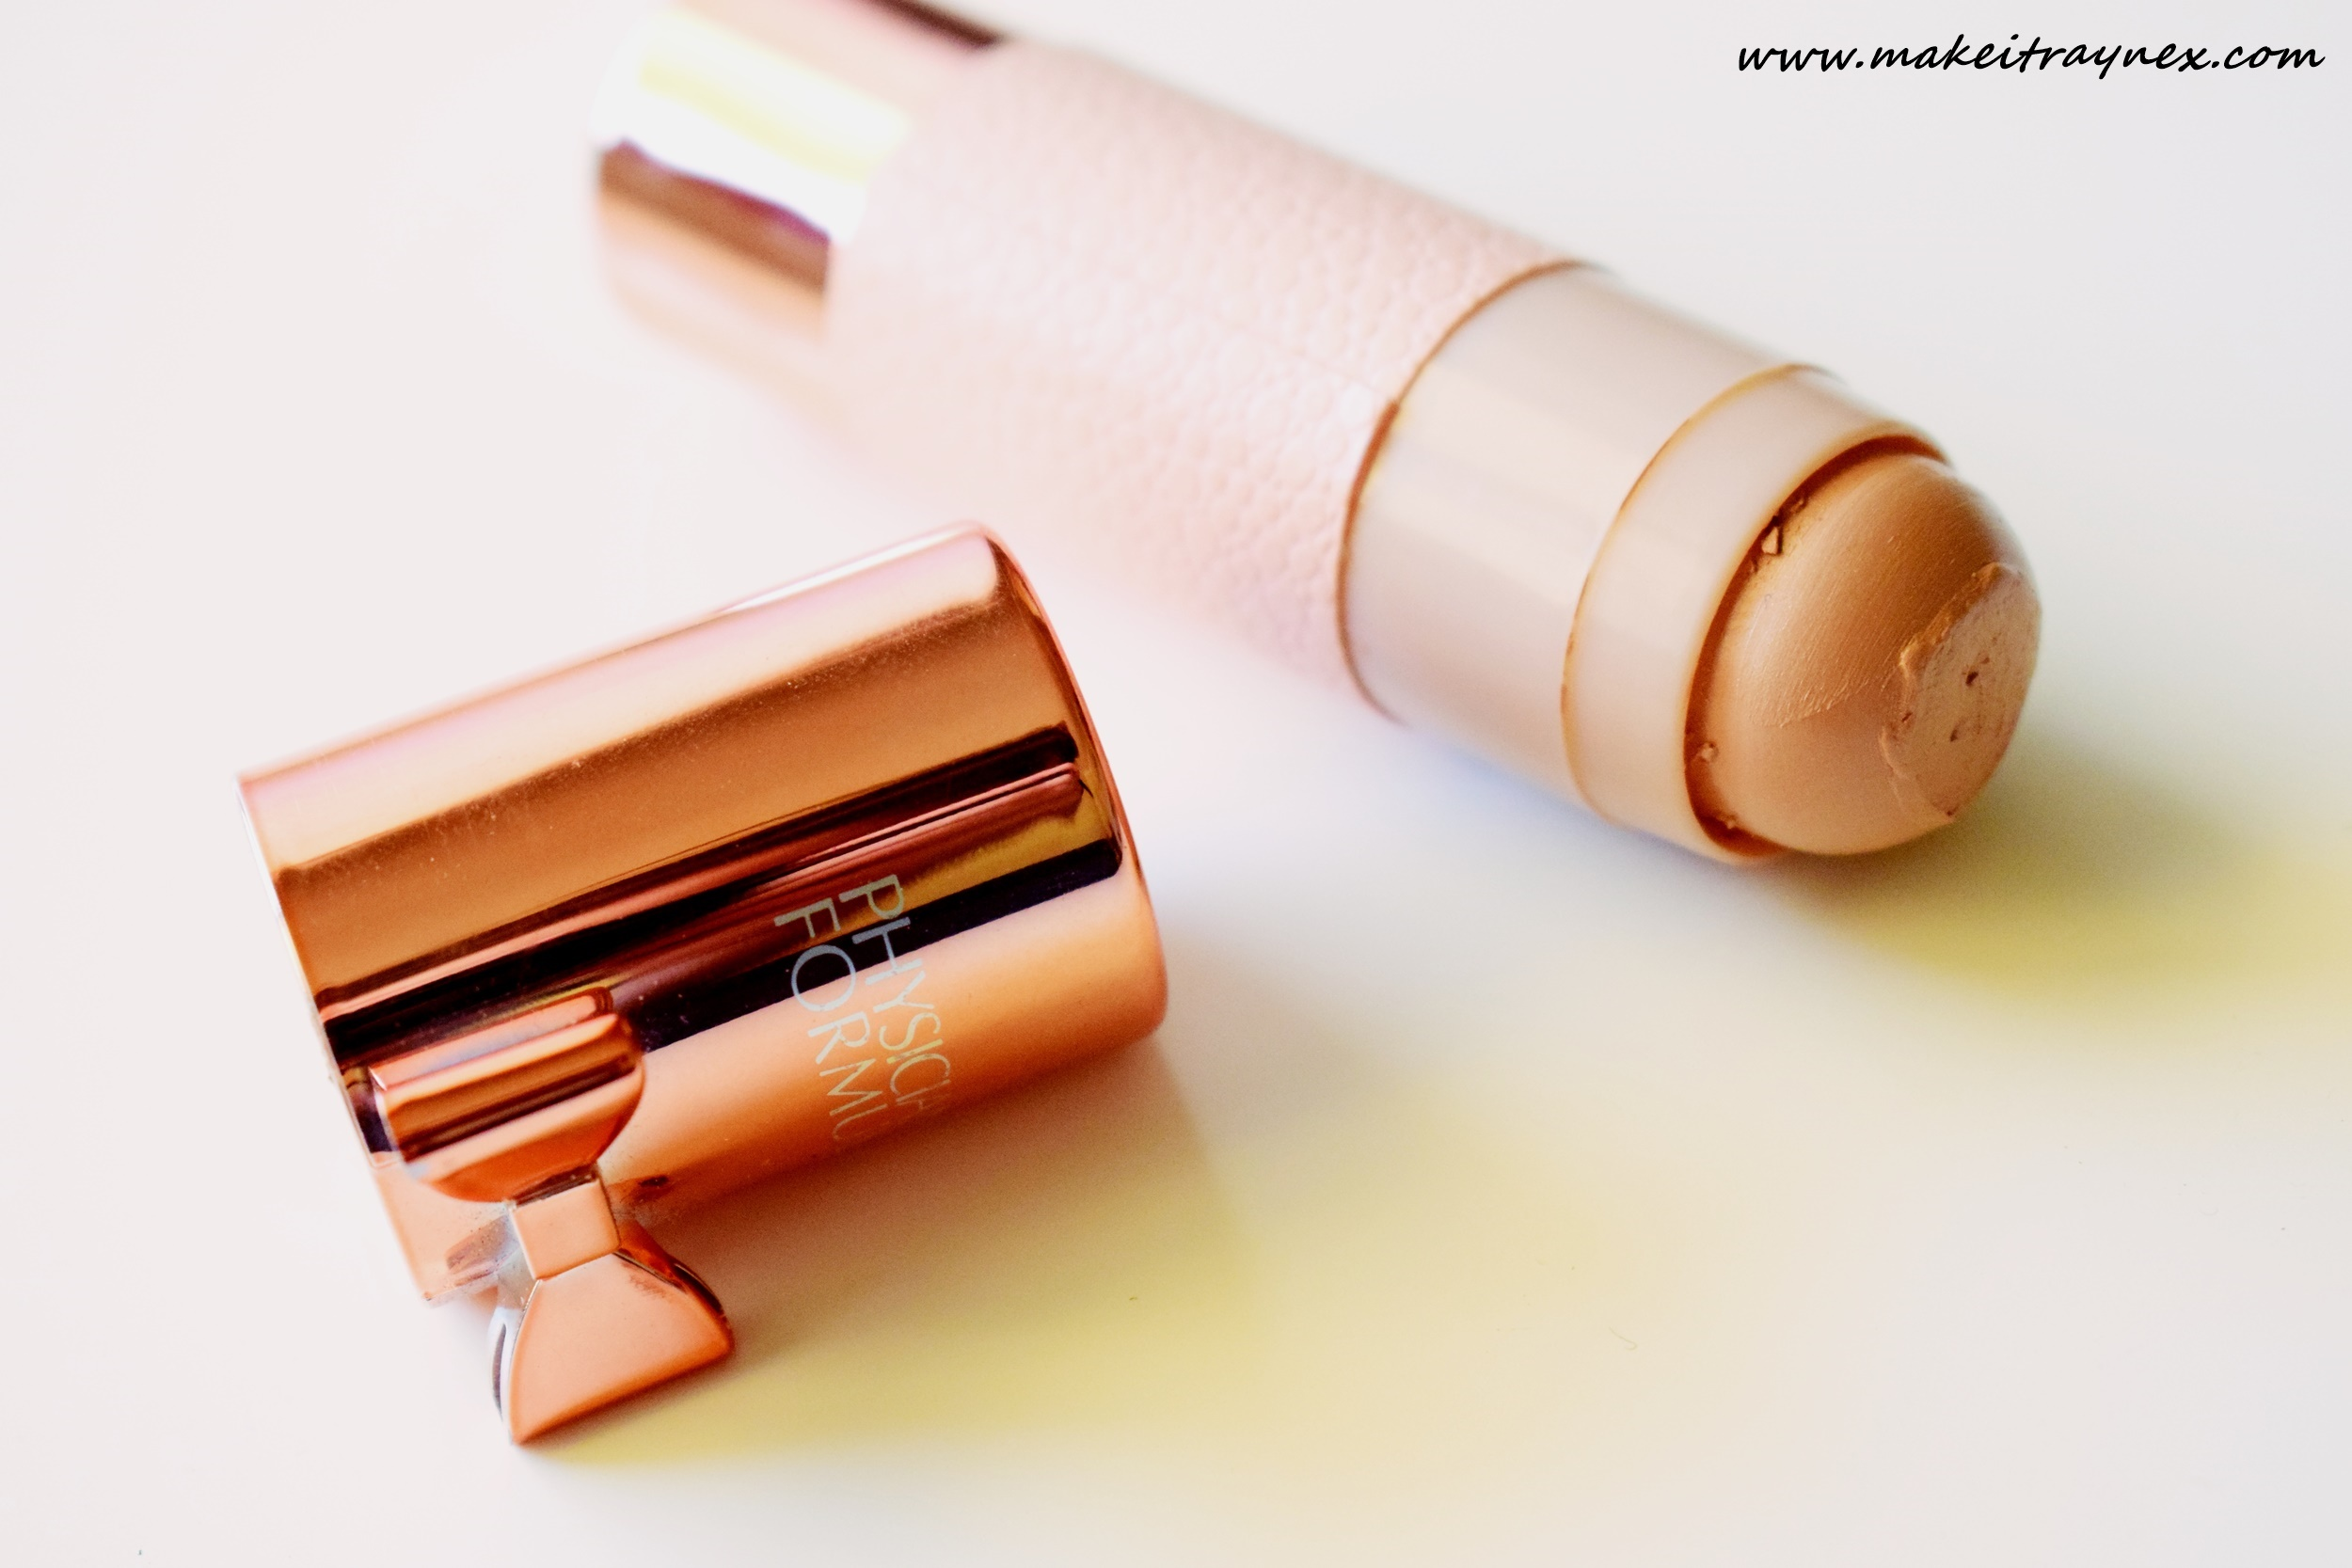 Touch of Glow Stick from Physicians Formula {REVIEW}